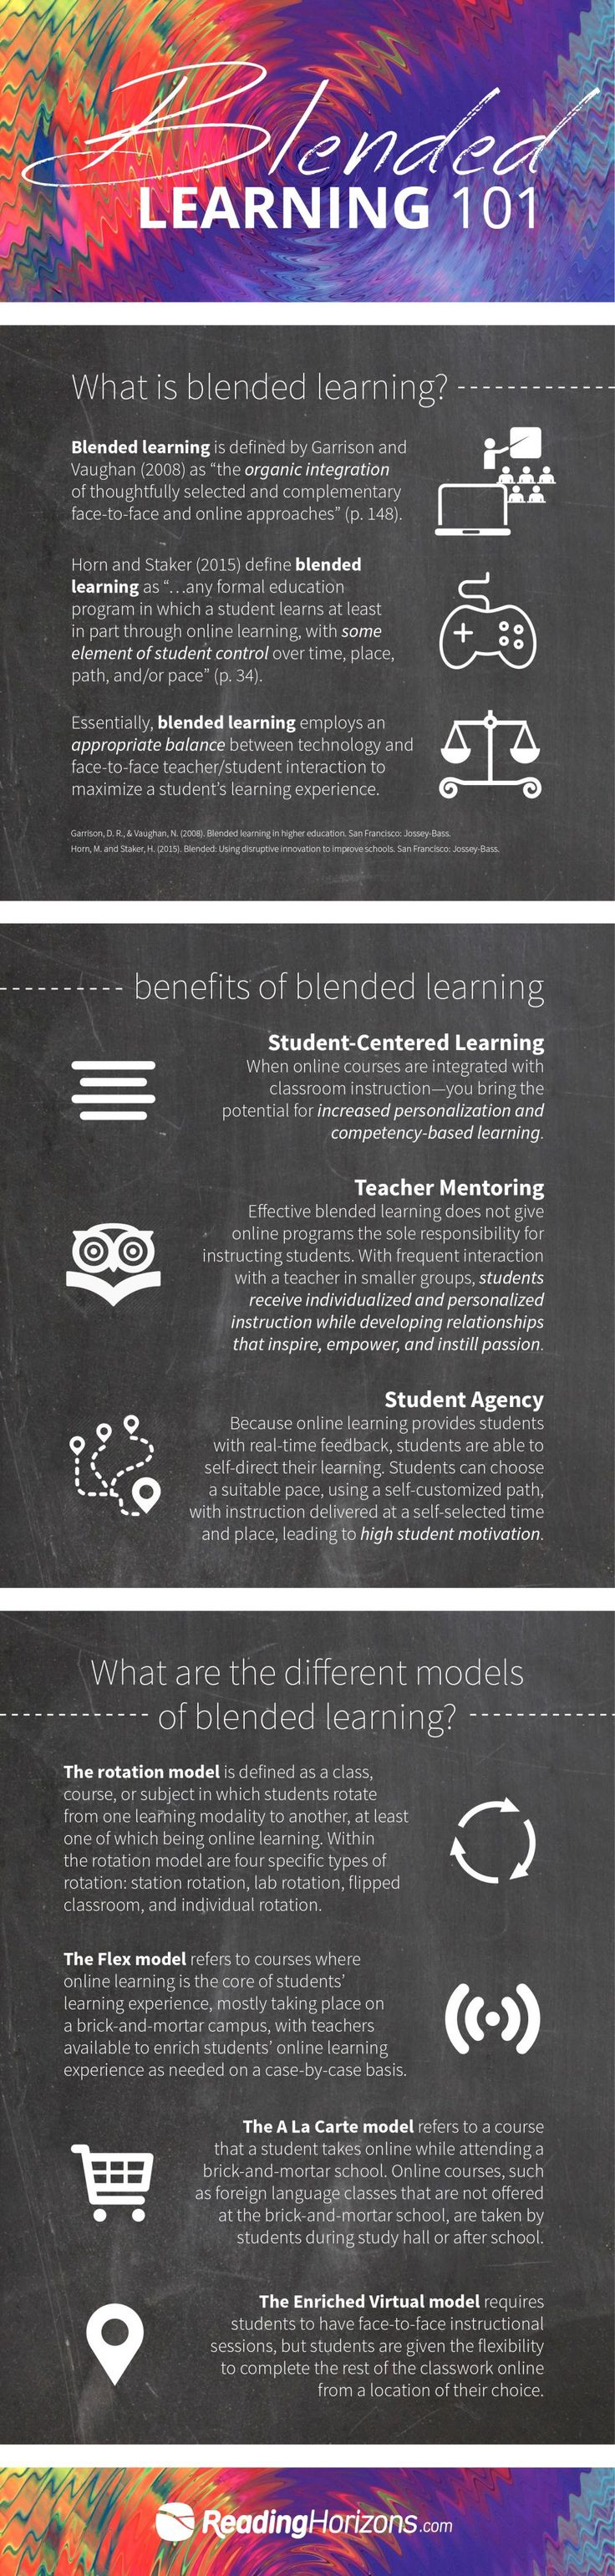 Anytime that multiple methods are blended together it benefits the class as whole. It serves to accommodate a greater number of learning styles in a single lesson.